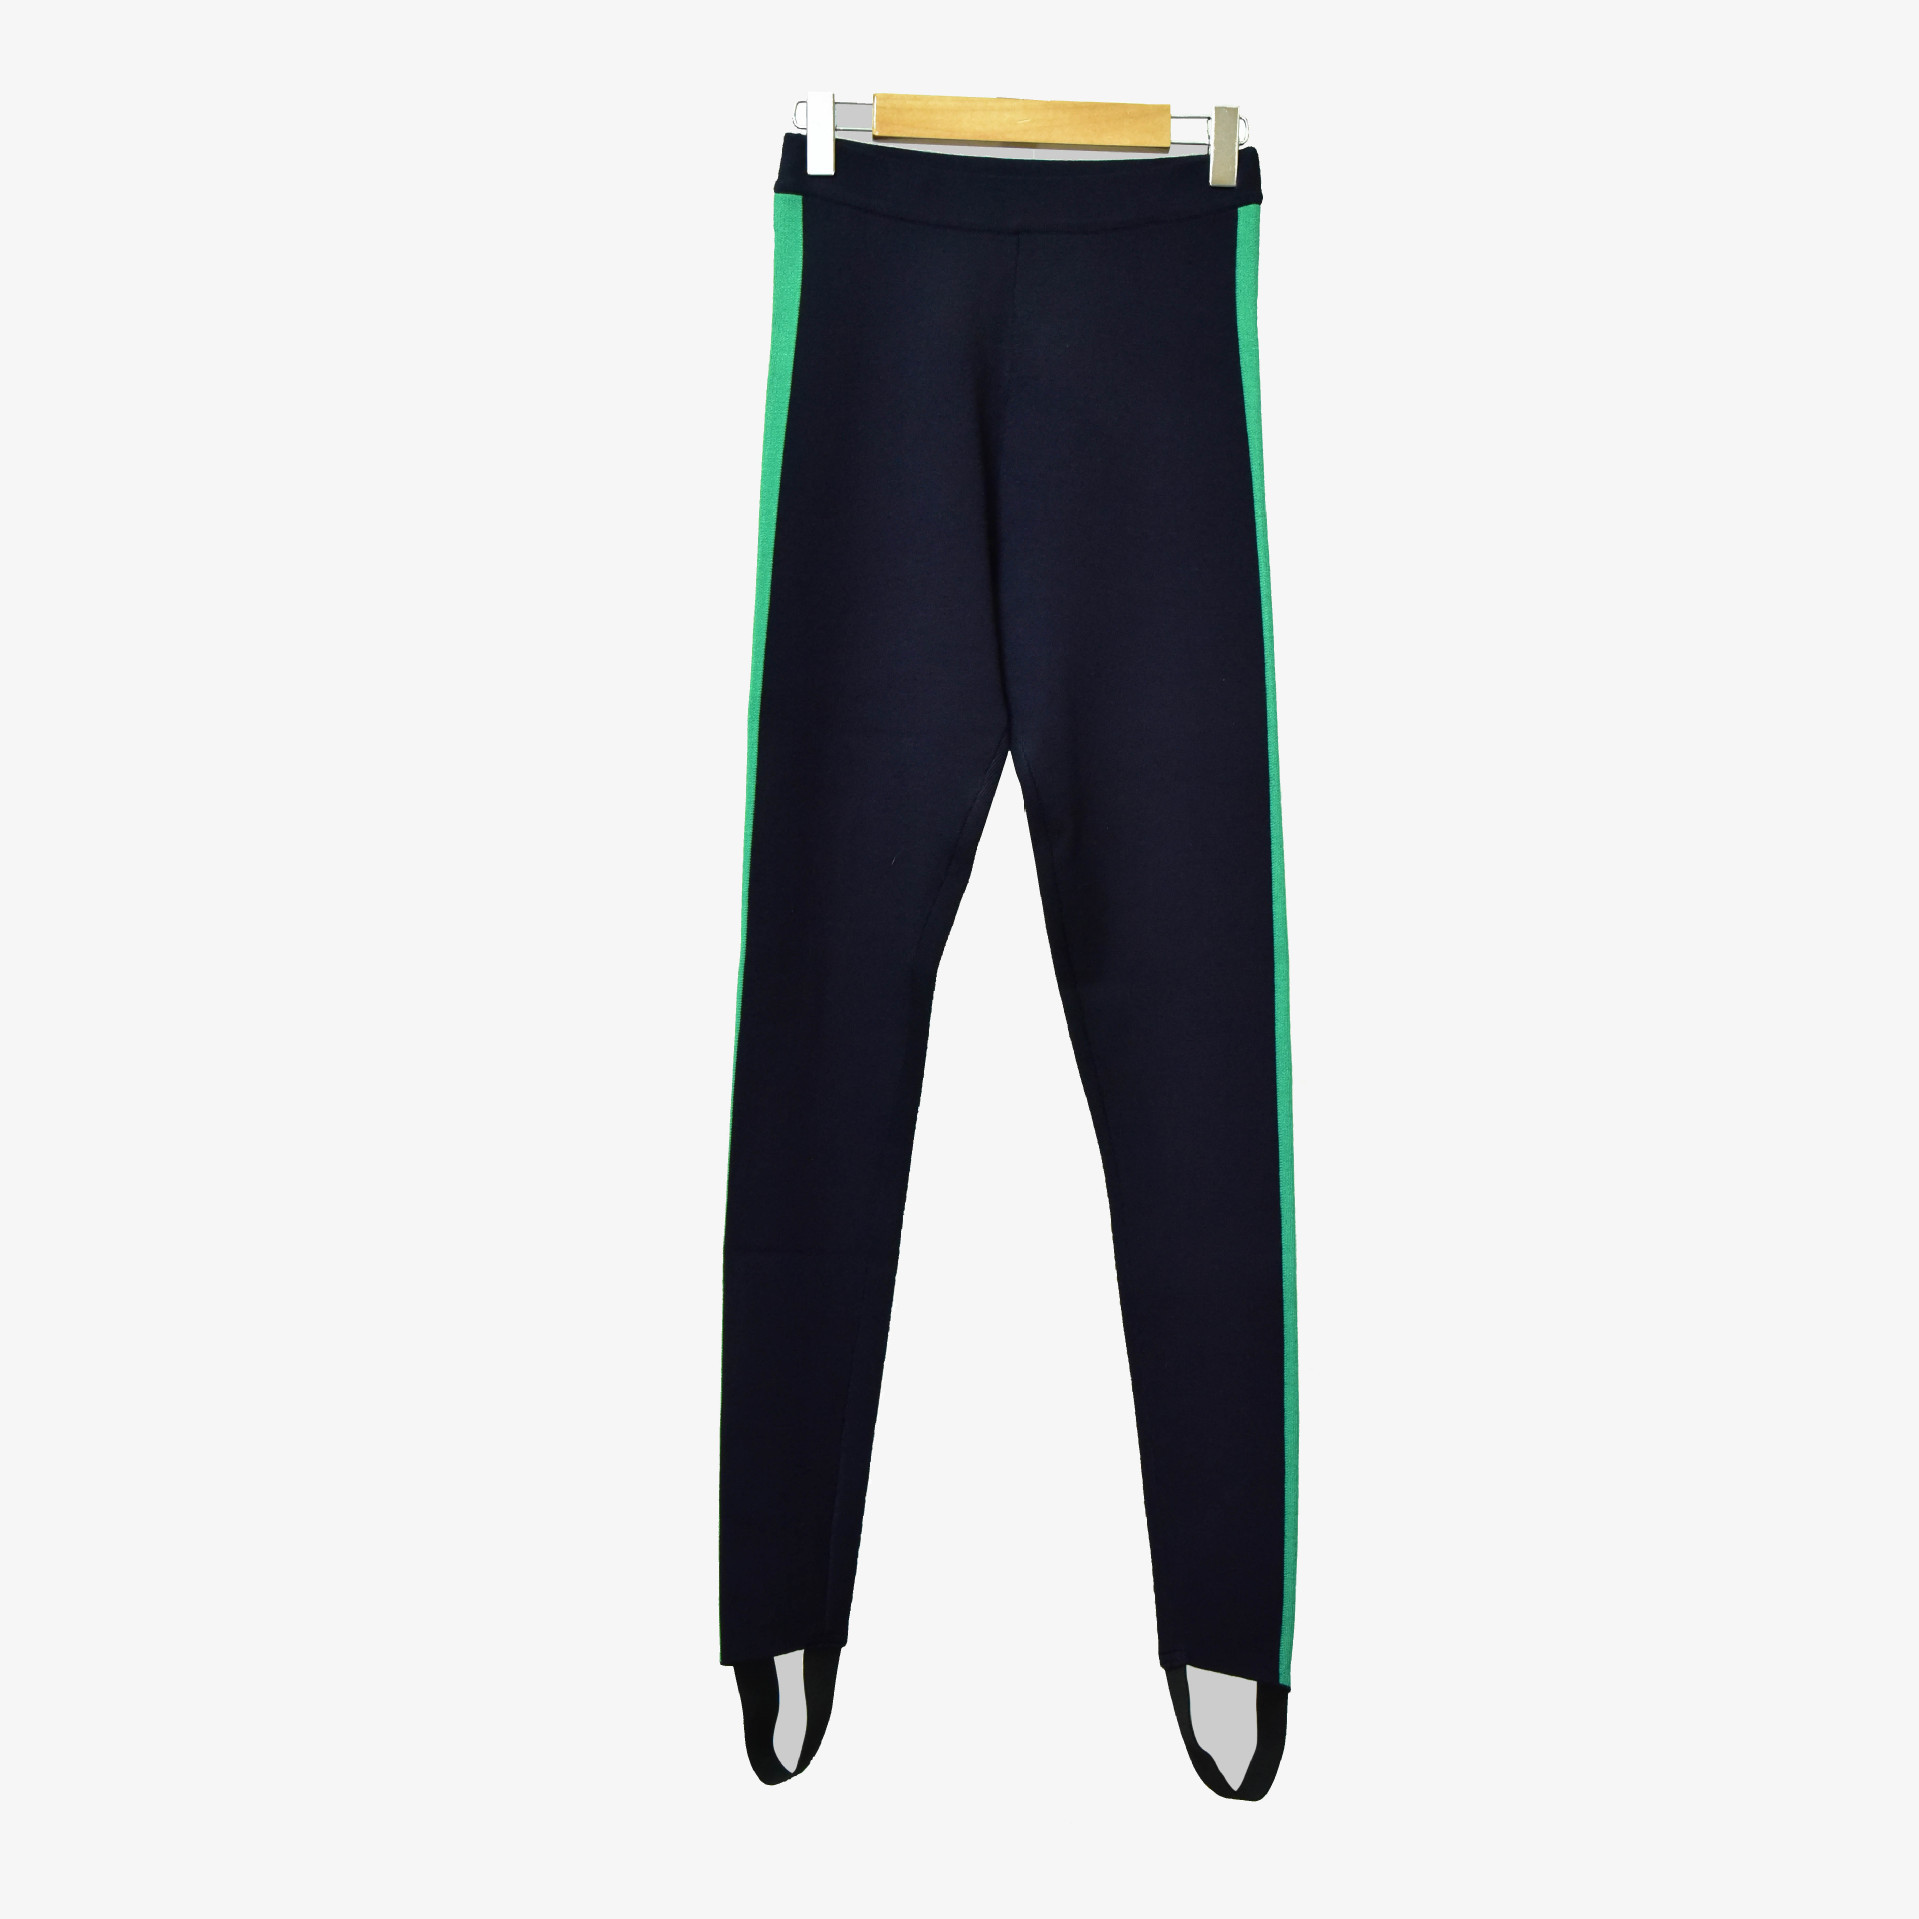 Image 2 - Women Pants 2019 Autumn and Winter Side Green Strip Casual Pants Stepping PantsPants